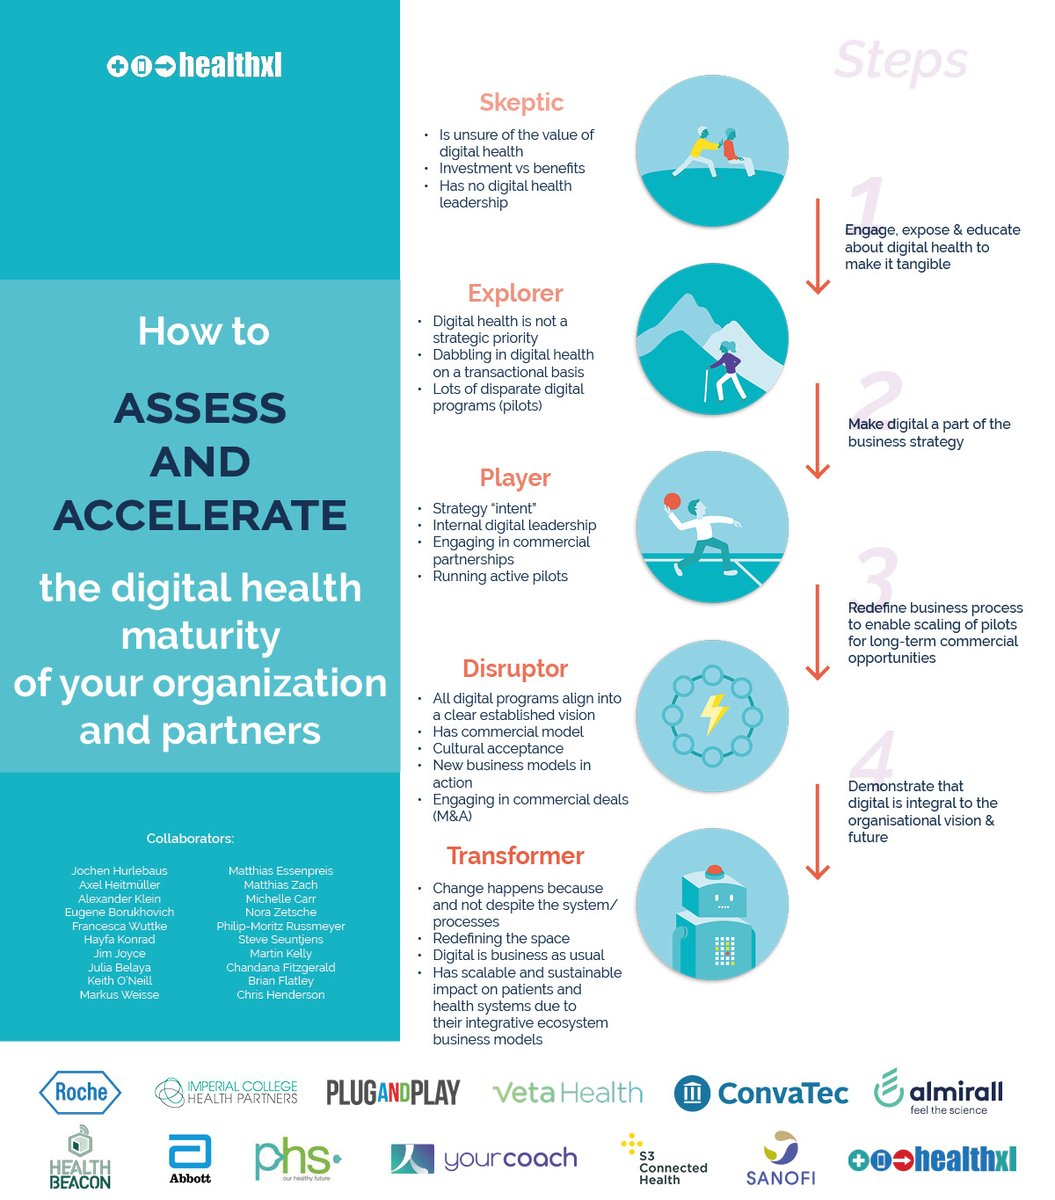 In which phase of the #DigitalHealth maturity journey is your organization?https://t.co/eu8Cwe9atF https://t.co/FjHPKmSjKR